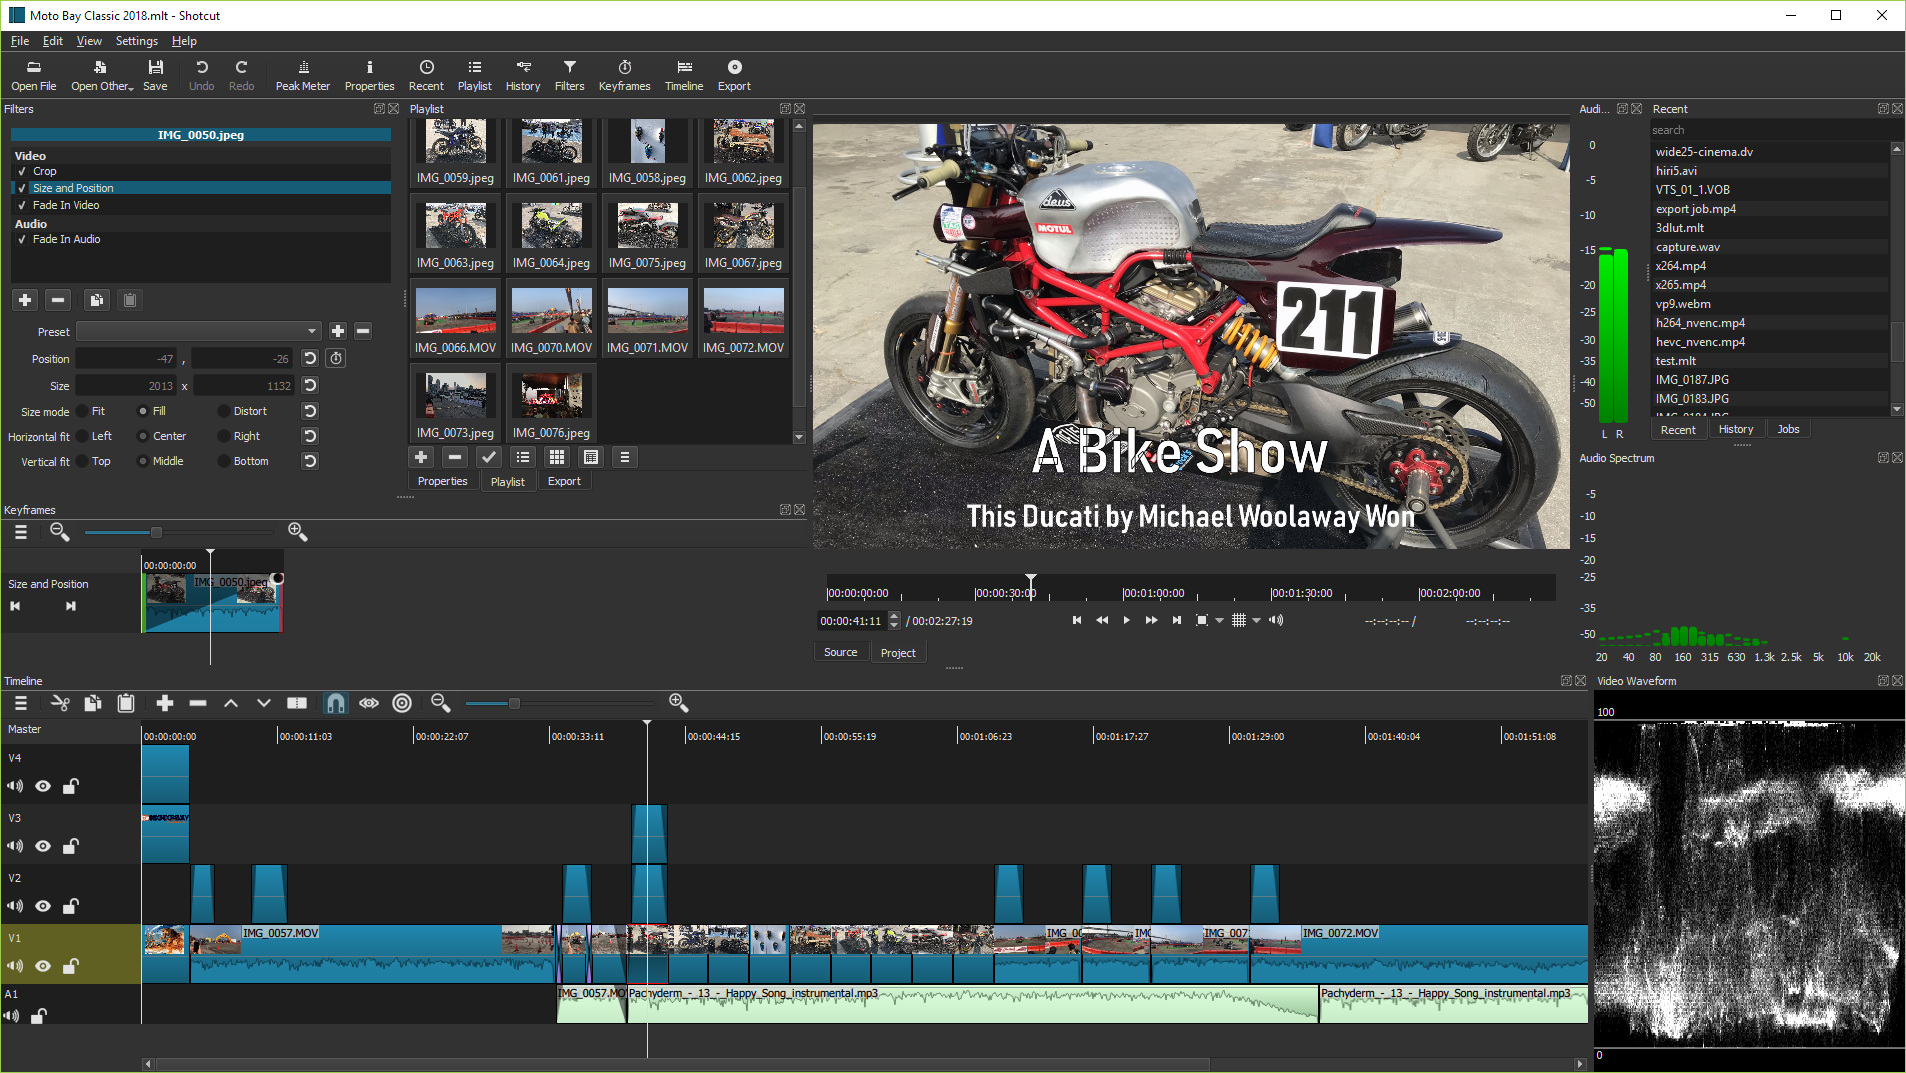 Shotcut is a free, open source, cross-platform video editor. - Added an Advanced mode to the Properties > Convert to Edit-friendly dialog with: Added detection of a HDR transfer function (ITU-R BT.2020 or SMPTE ST2084) to automatically show Convert dialog. Added Convert to BT.709 colorspace that provides HDR-to-SDR tone mapping! This helps a lot of people who are recording games in HDR and were surpised by the poor colors when editing in Shotcut. Added Deinterlace option (bwdif) that outputs one frame for each field. Added Override frame rate and Frame rate conversion with Blend and Motion Compensation options. (Please be aware that Motion Compensation is very slow and that is not a bug.) Added Use Higher Performance Waveforms to Timeline and Keyframes menus (default on). Added a red outline around the thumnbail of the currently opened Playlist item. Added video filter Reduce Noise: Quantization. Added Color space and Color transfer to Properties > Video.